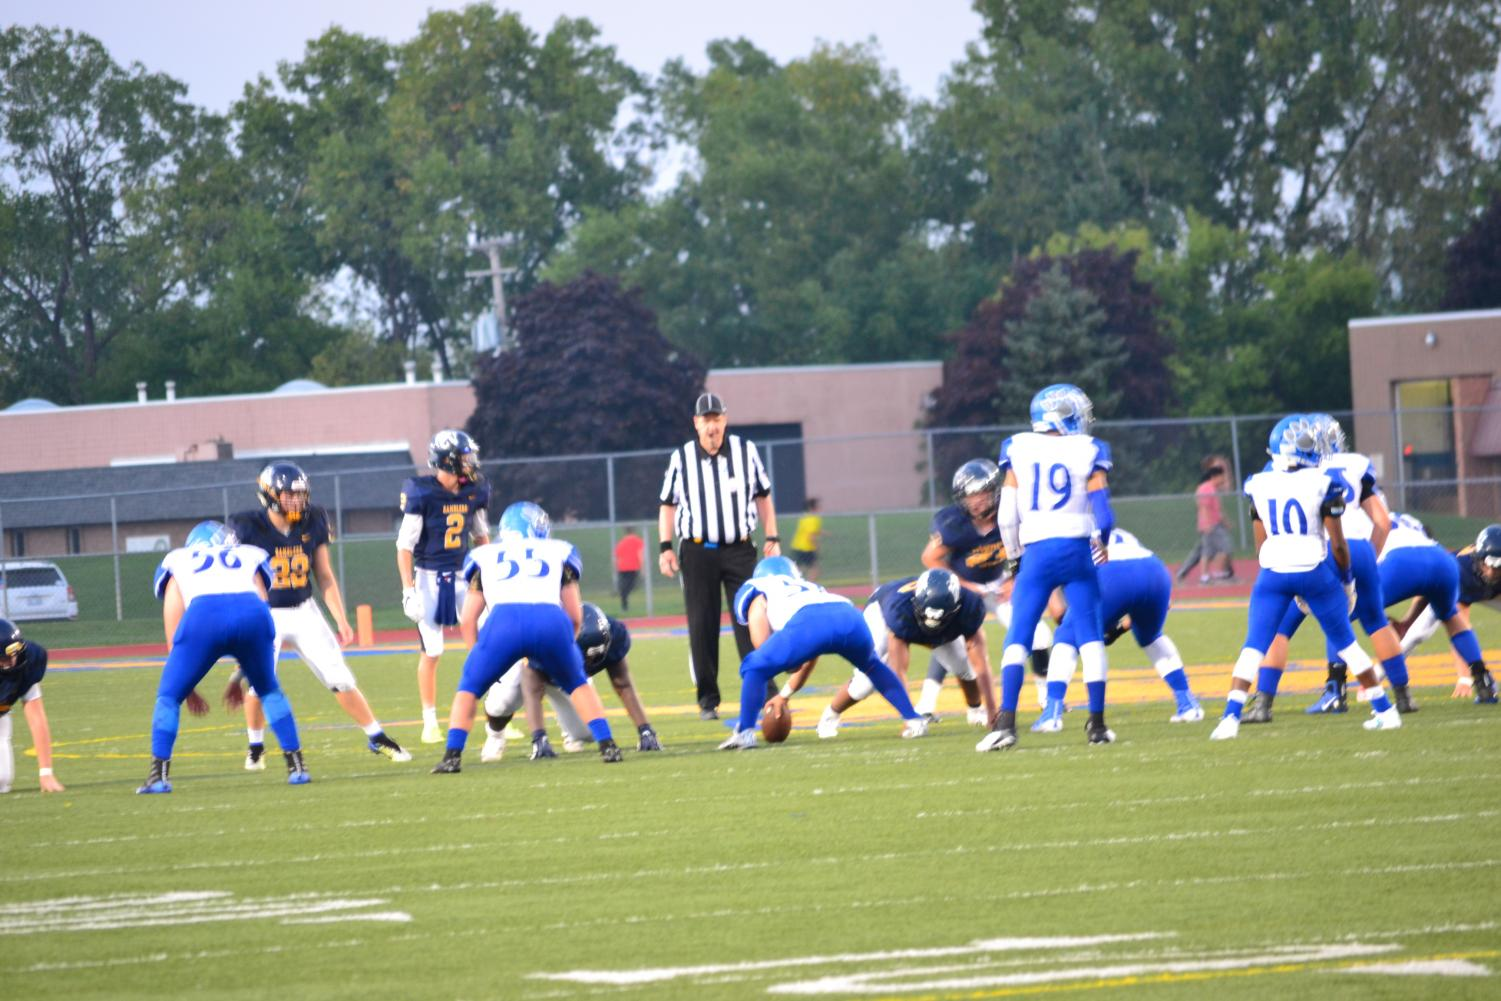 Lakeview High's offense on the field in a 24-6 win over the Ramblers in week 4 of the regular season on September 14th, 2018